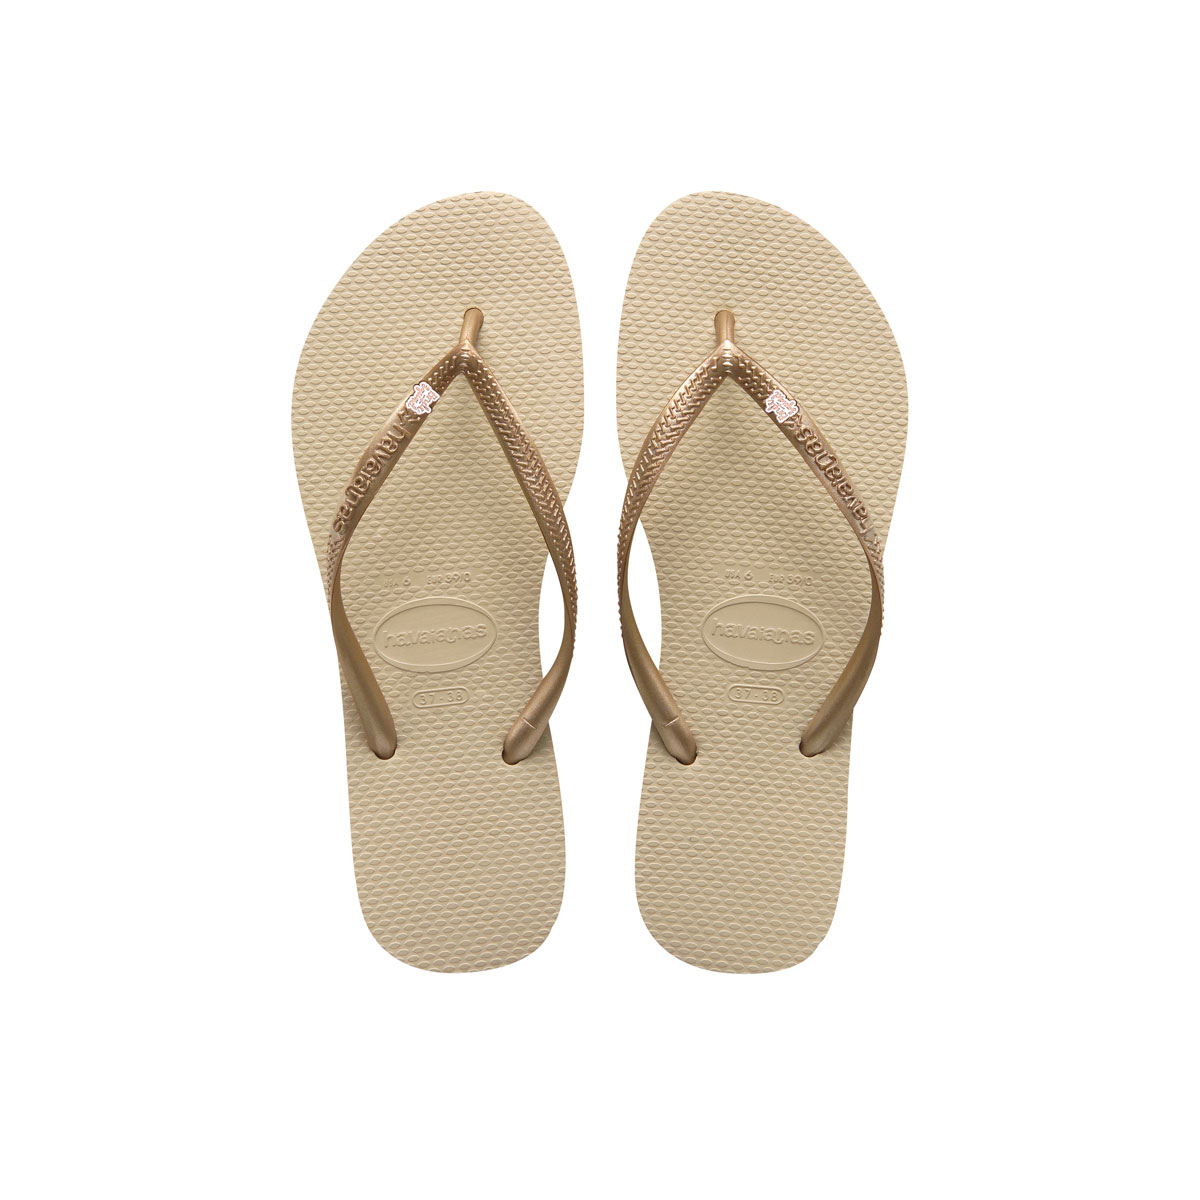 Havaianas Sand Grey Flip Flops with Rose Gold Bride Squad Wedding Pin